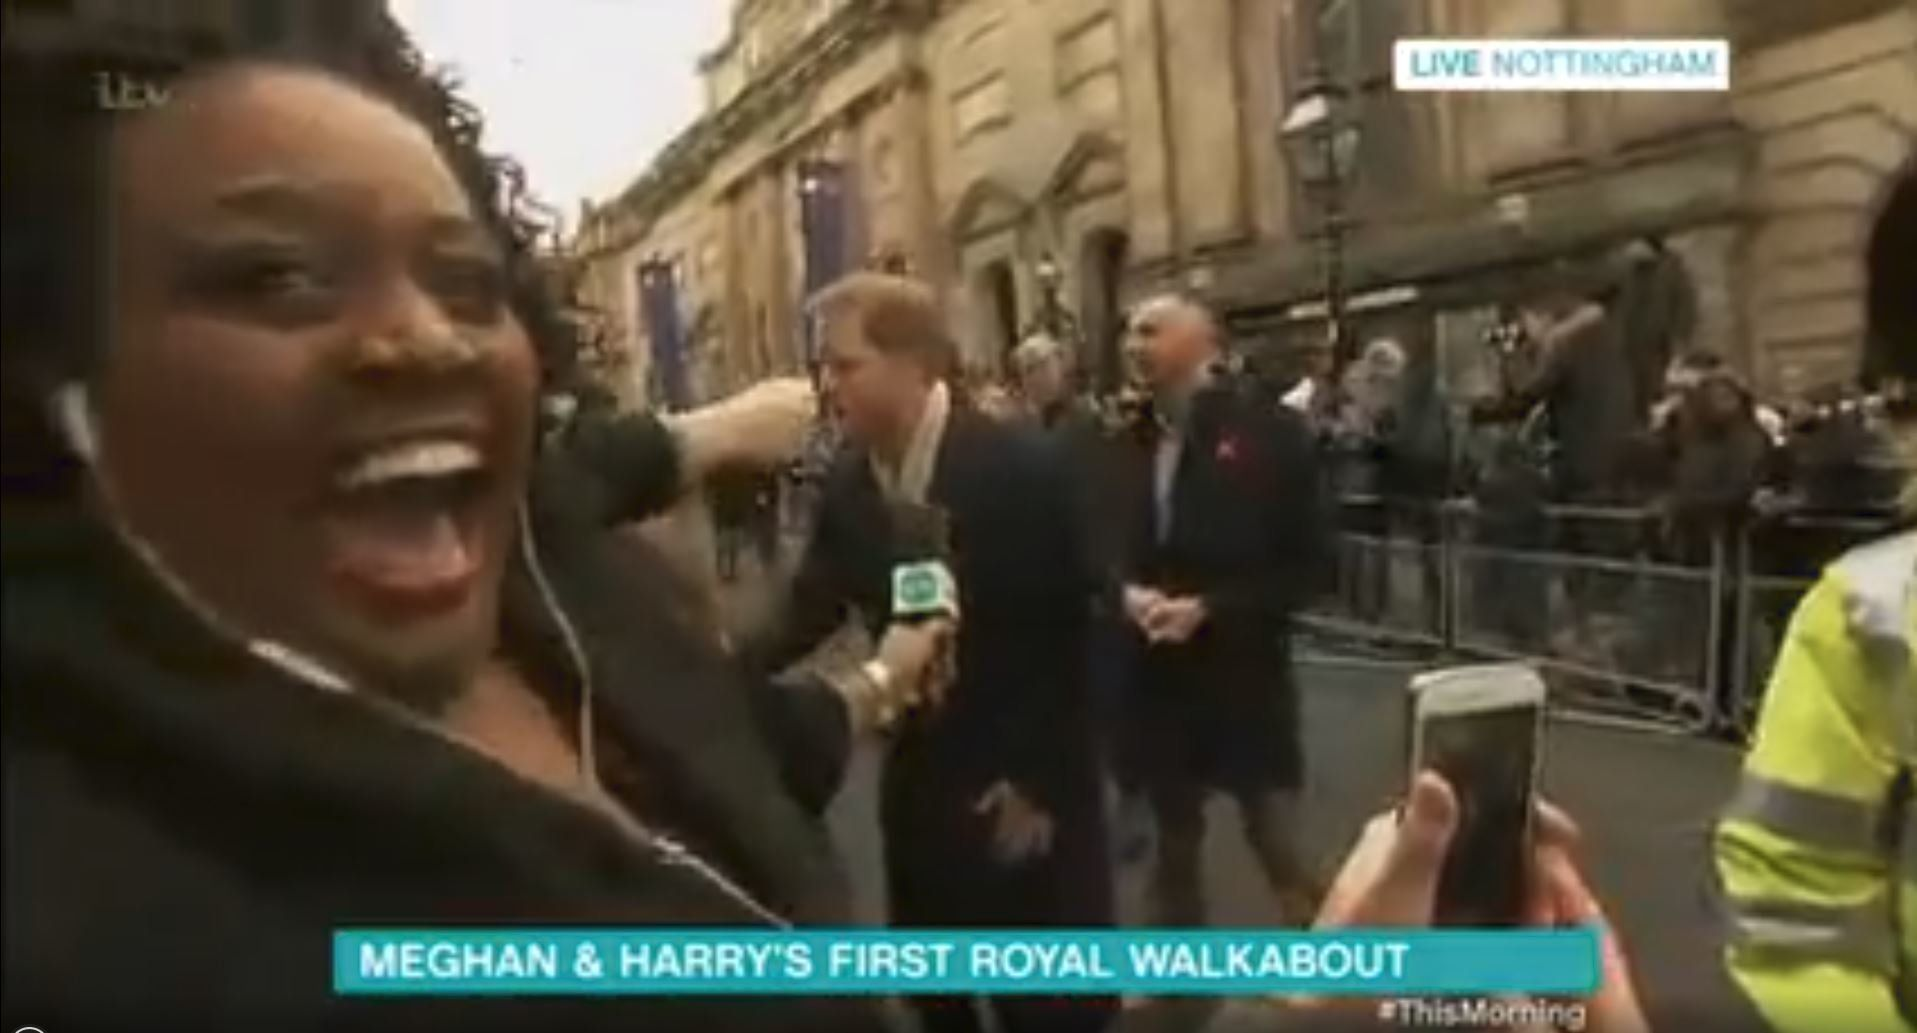 Alison Hammond couldn't contain her excitement as she covered Prince Harry and Meghan Markle's first...